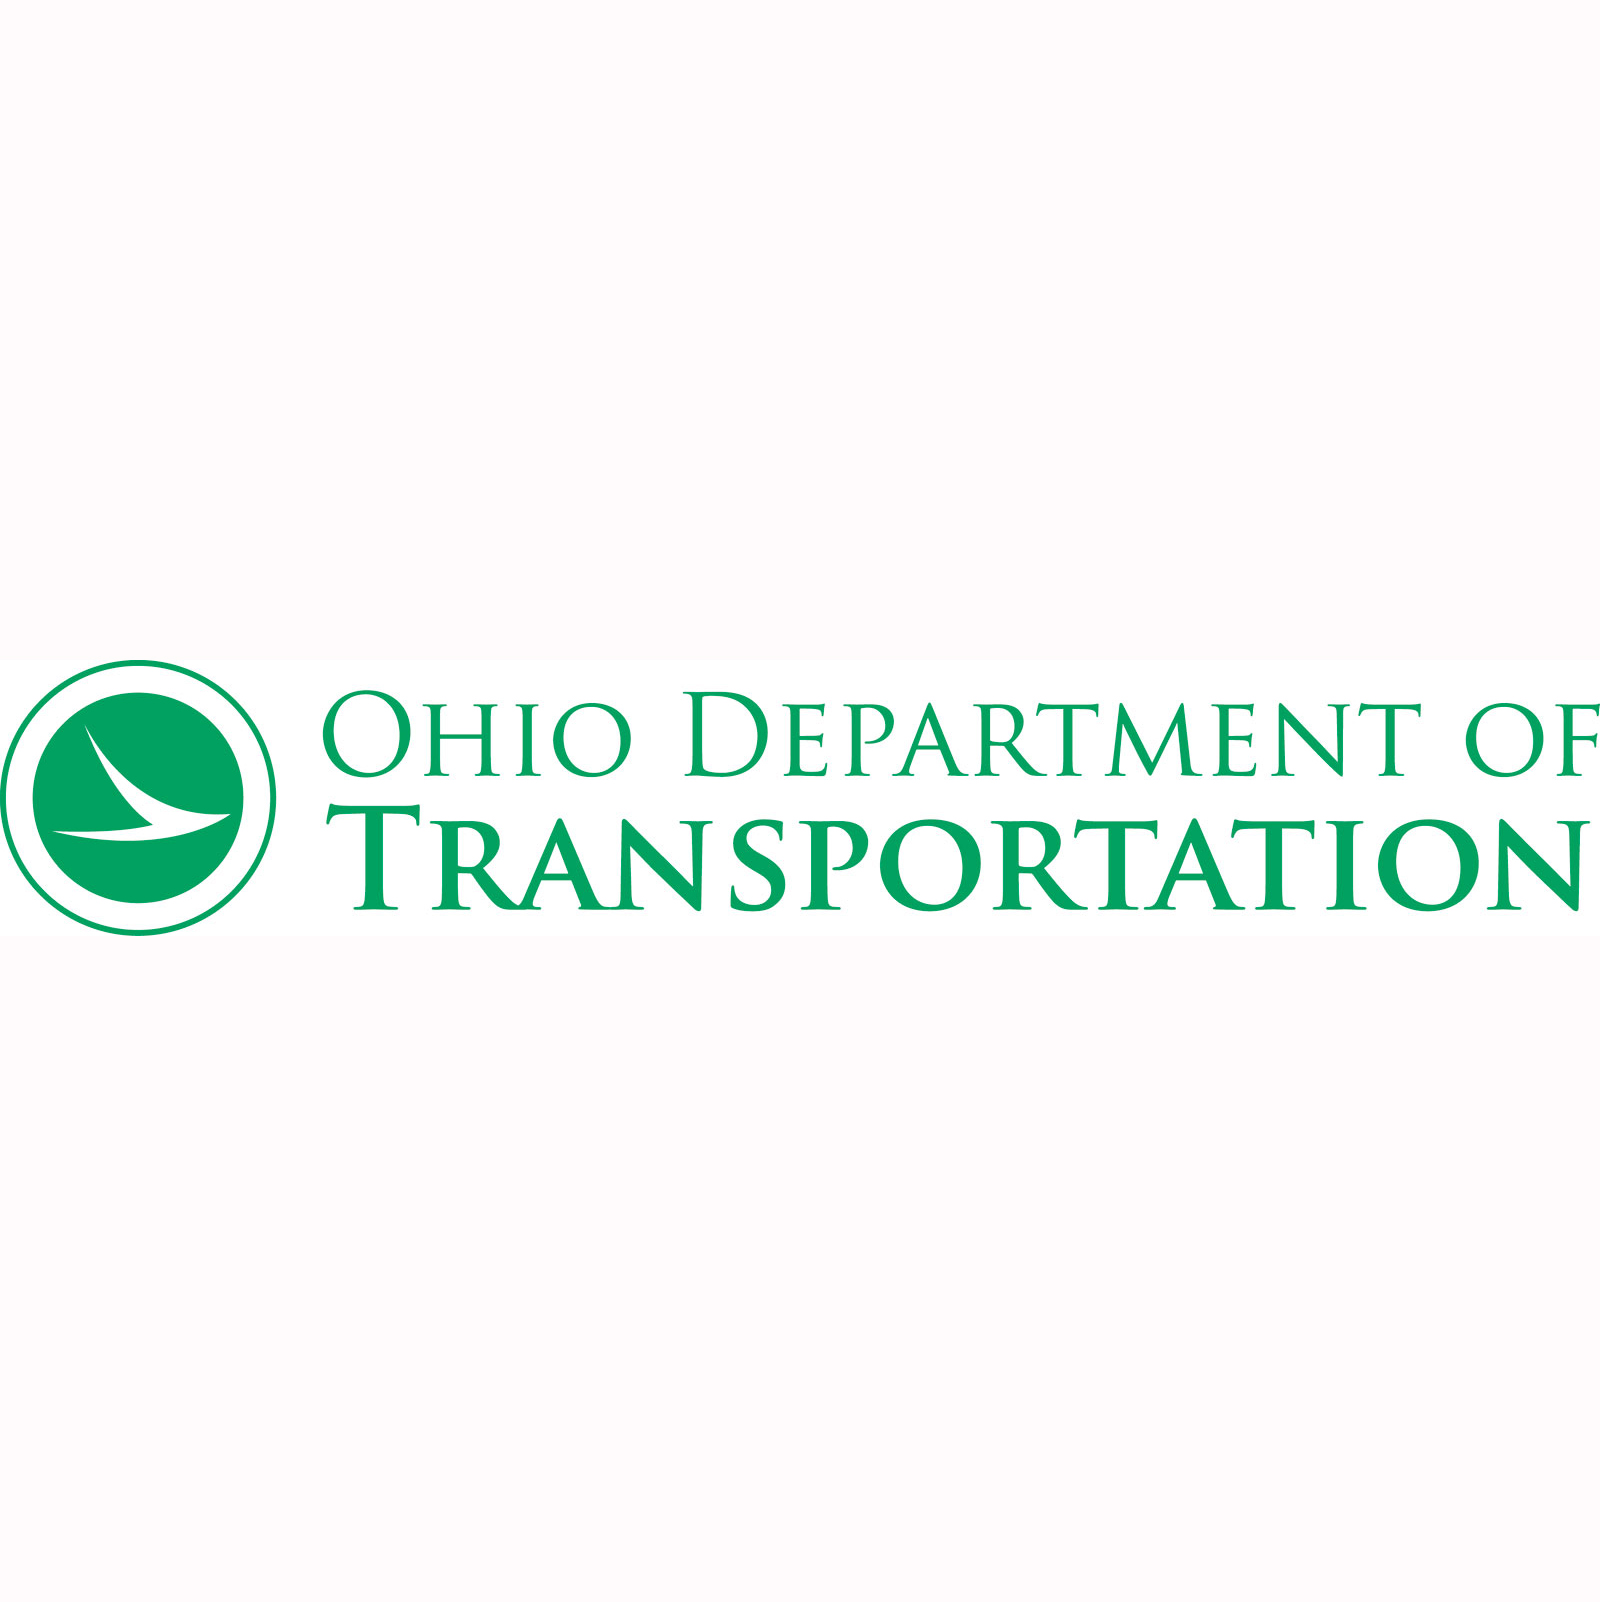 ODOT_logo copy